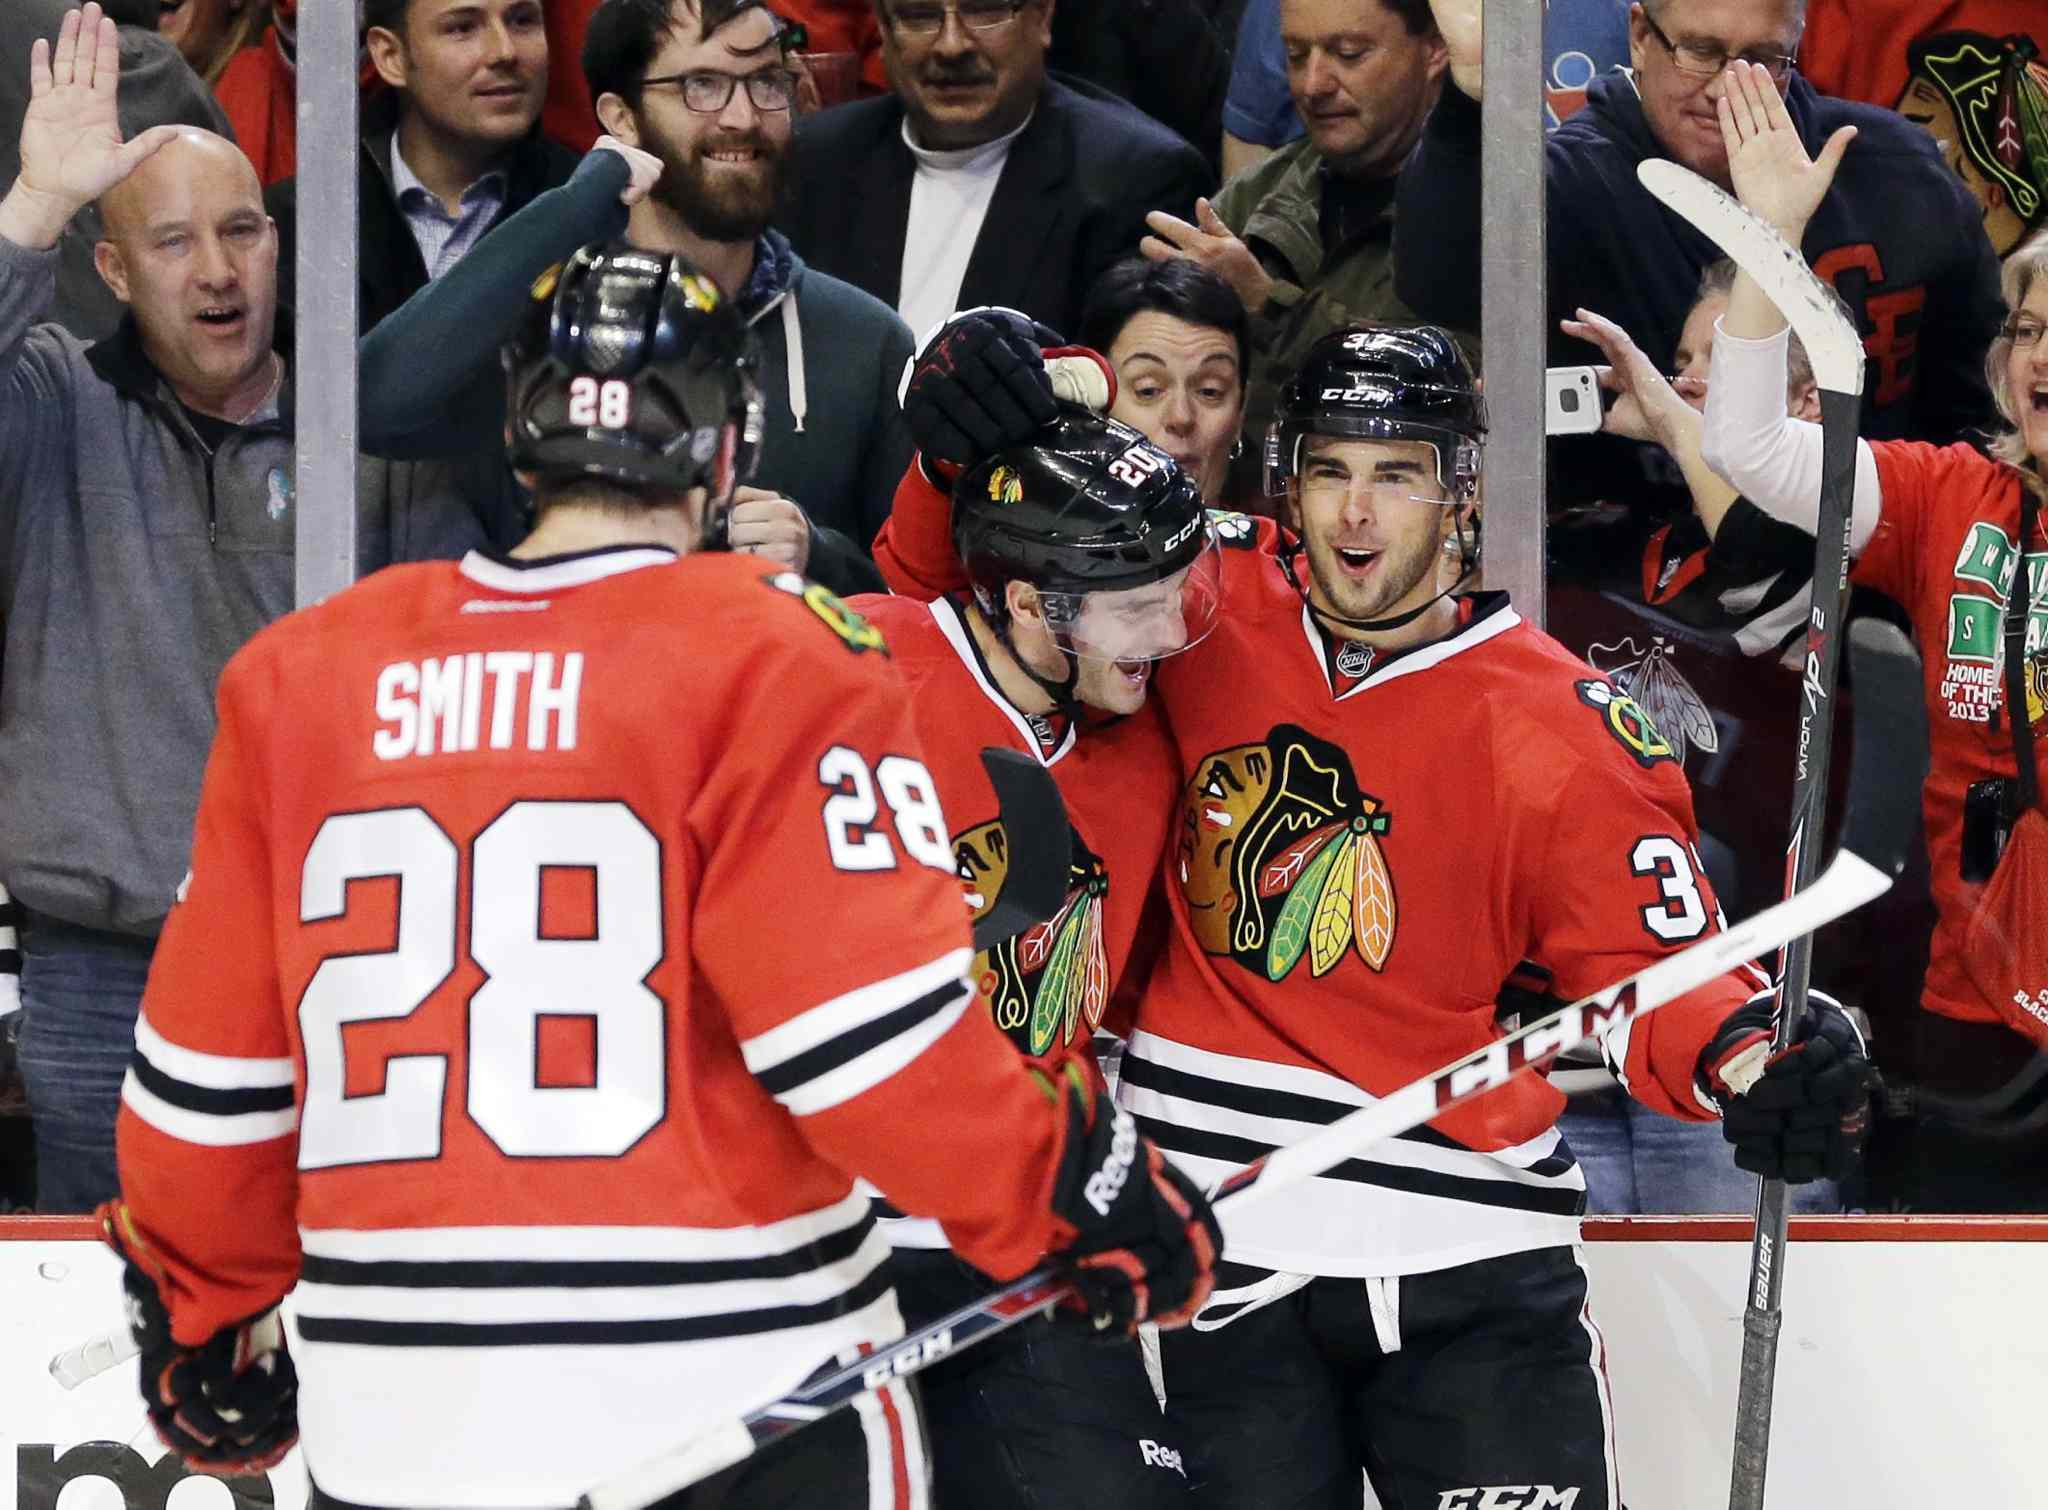 Chicago Blackhawks' Brandon Pirri (right) celebrates with Brandon Saad (centre) and Ben Smith (28) after Pirri scored a goal during the second period.